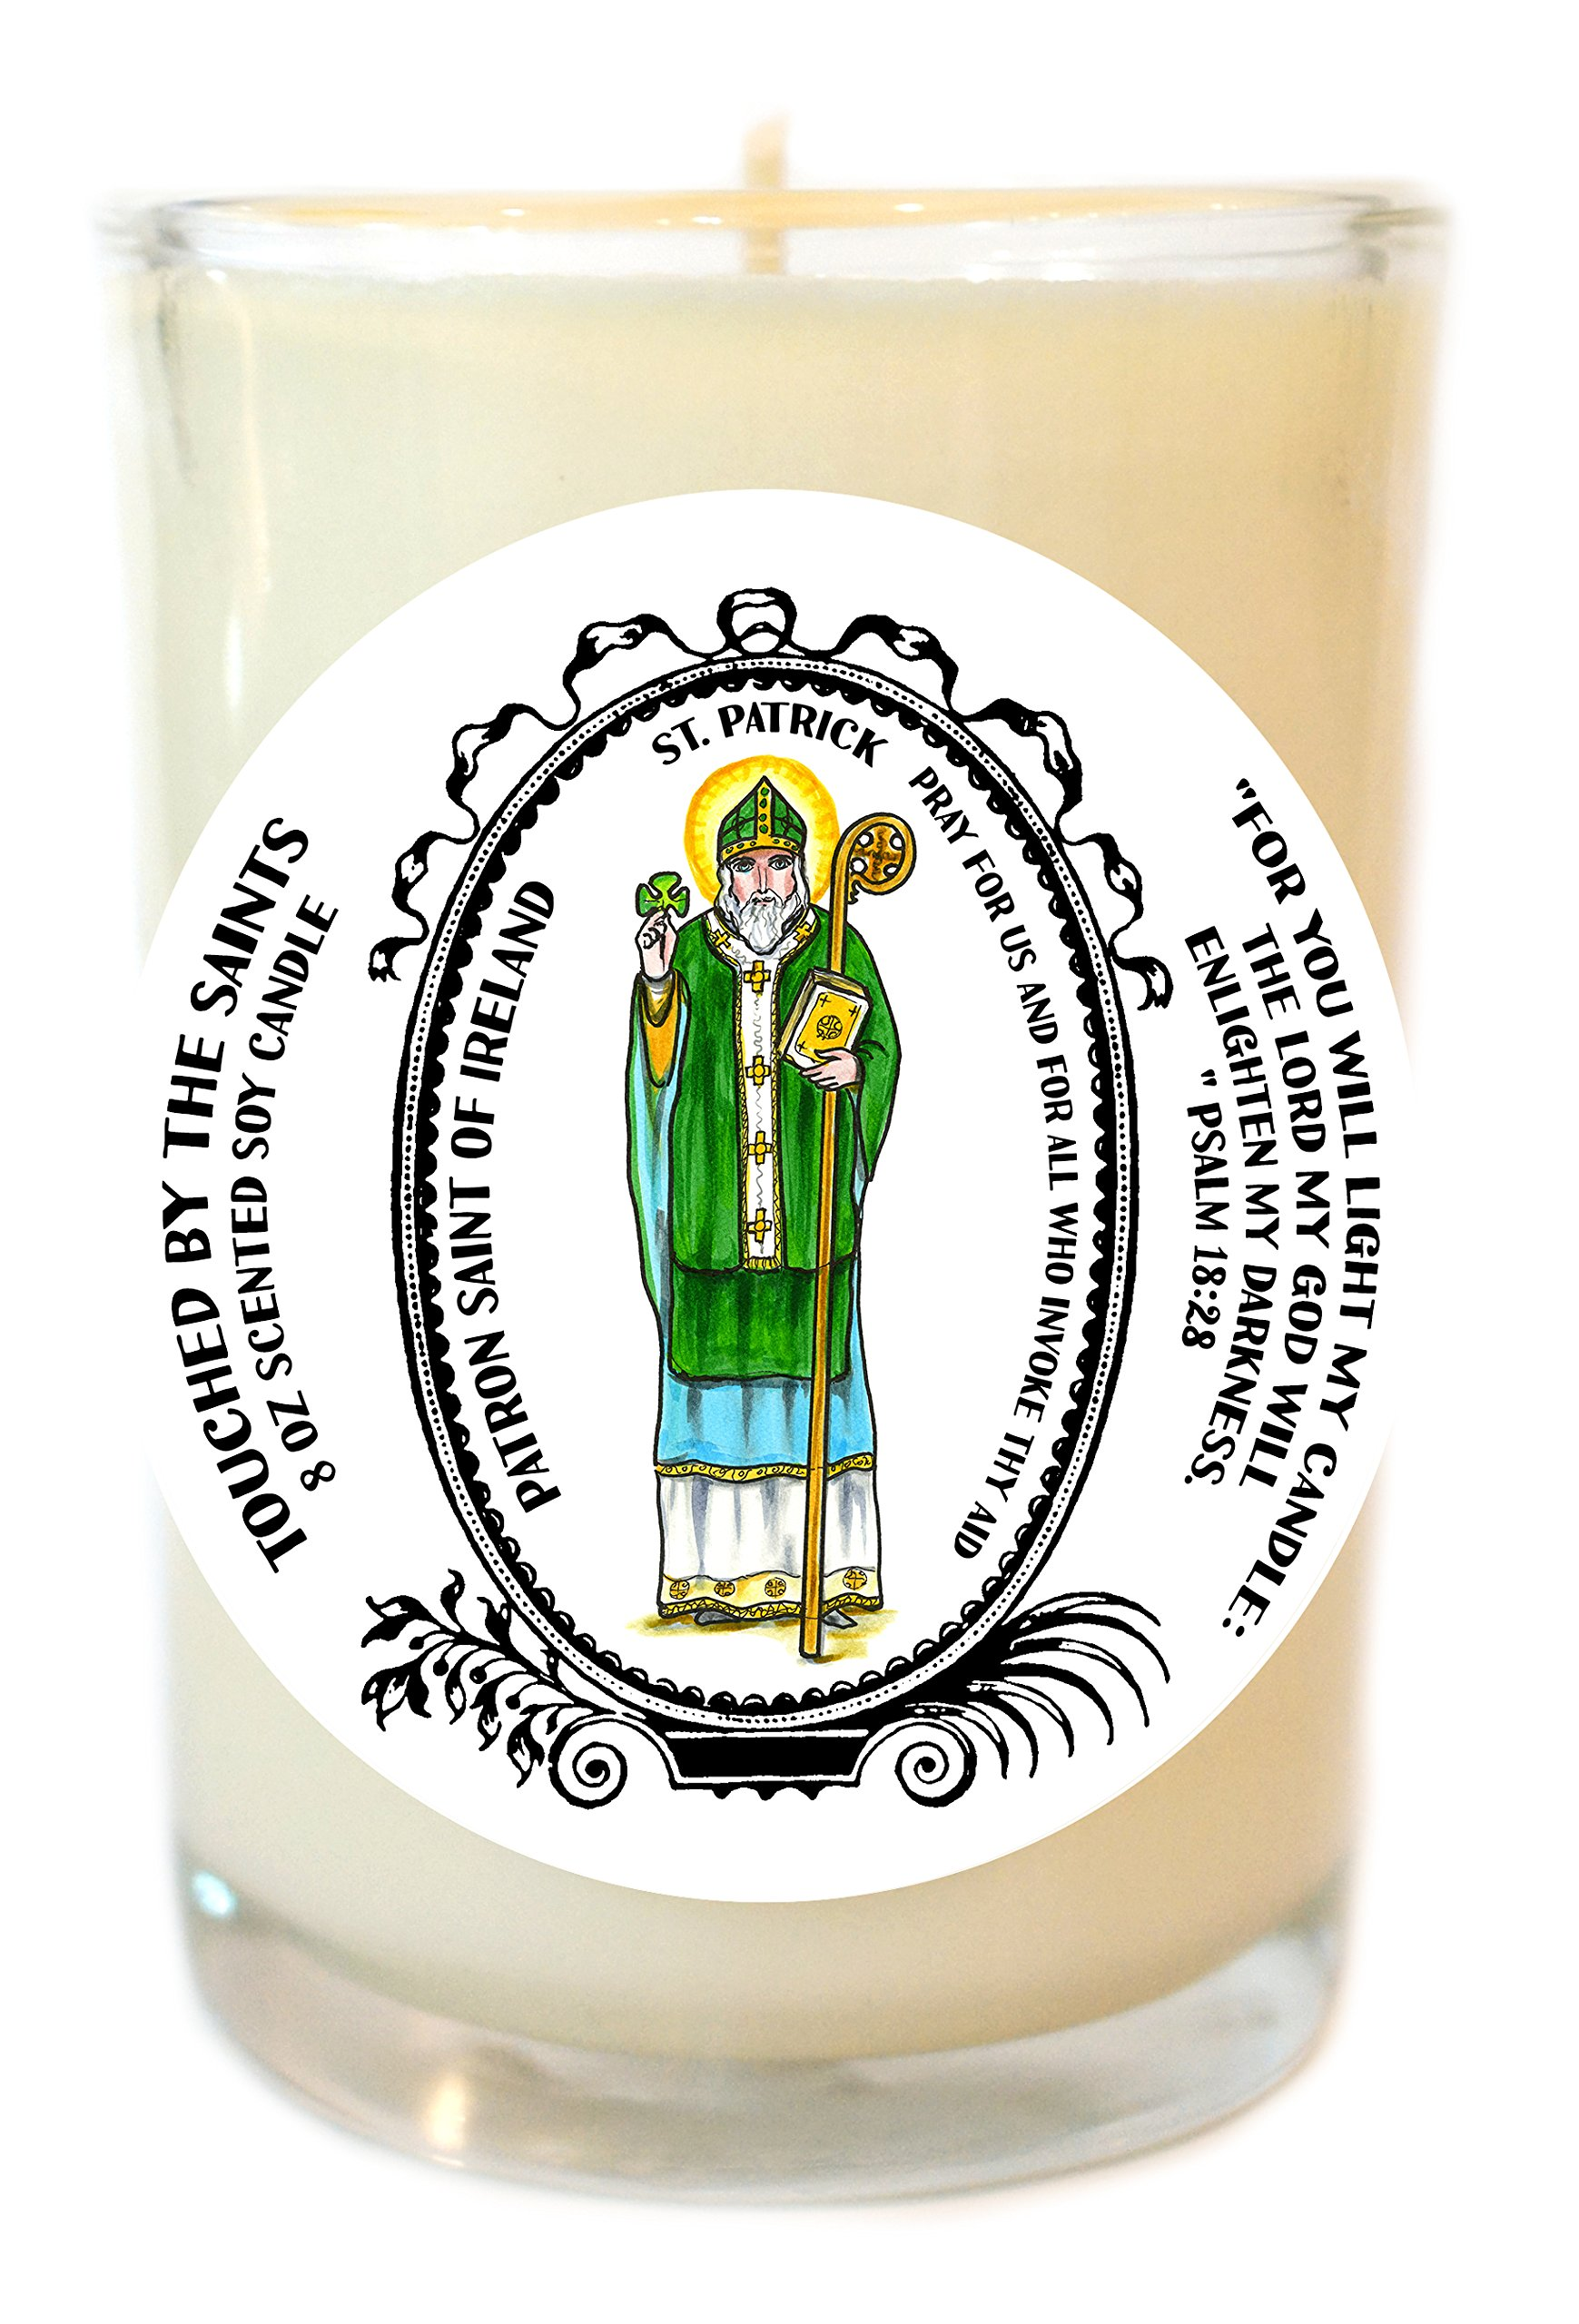 Saint Patrick Patron of Ireland 8 Oz Scented Soy Glass Prayer Candle